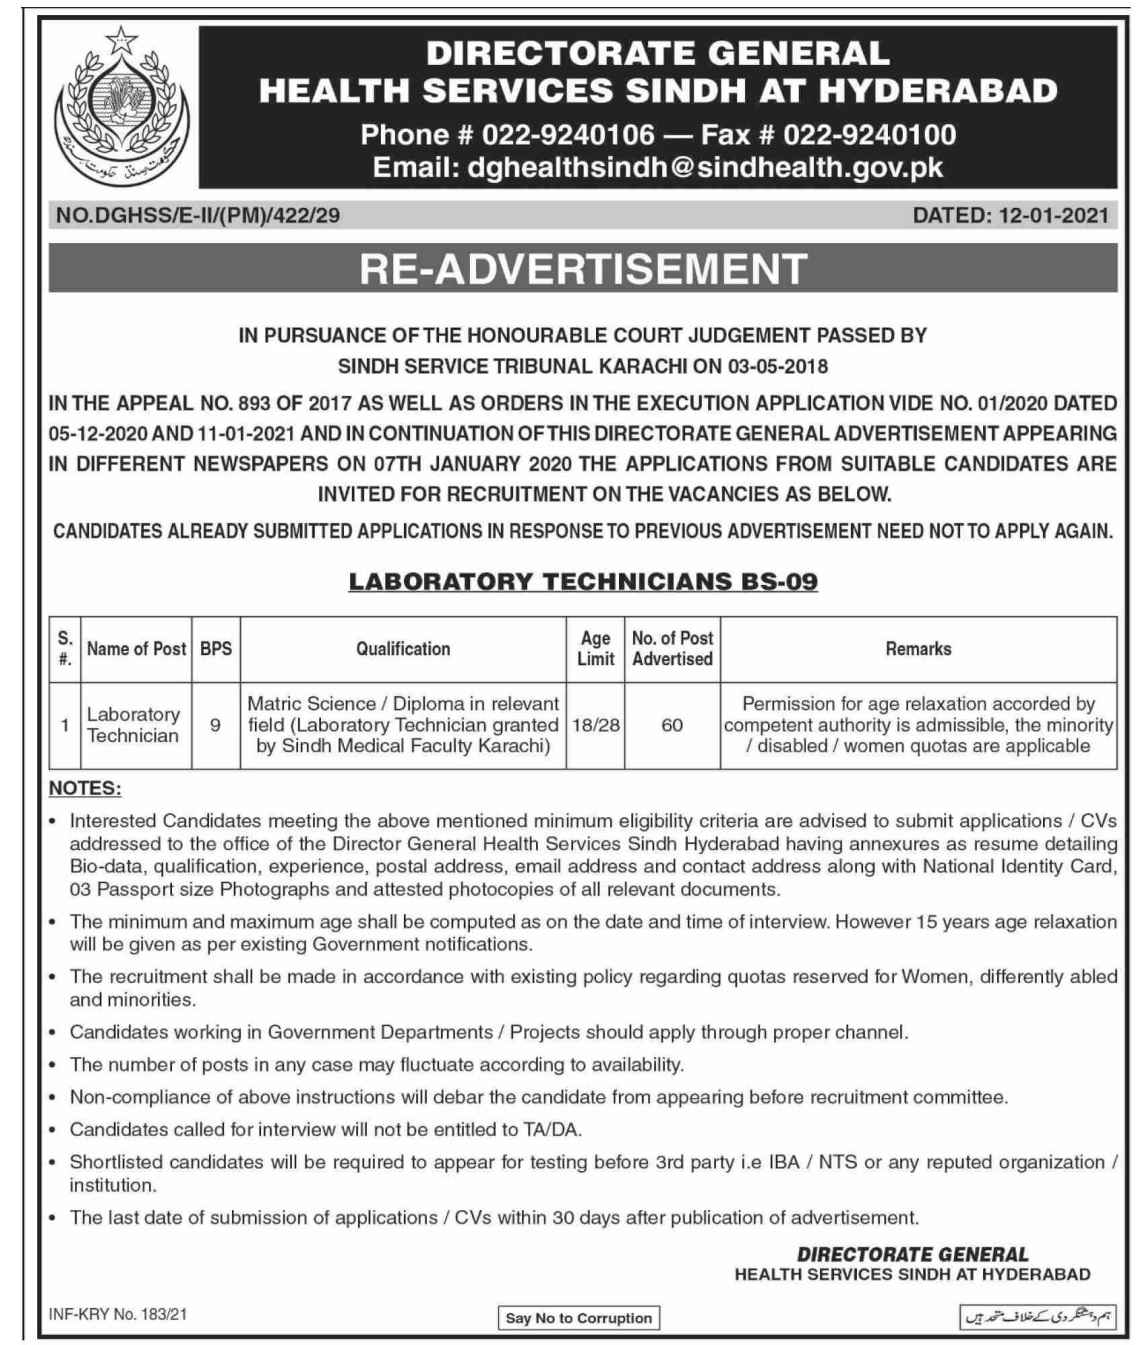 Re-advertisement of 60 Posts in Directorate General Health Services Hyderabad Jobs 2021 for Laboratory Technician